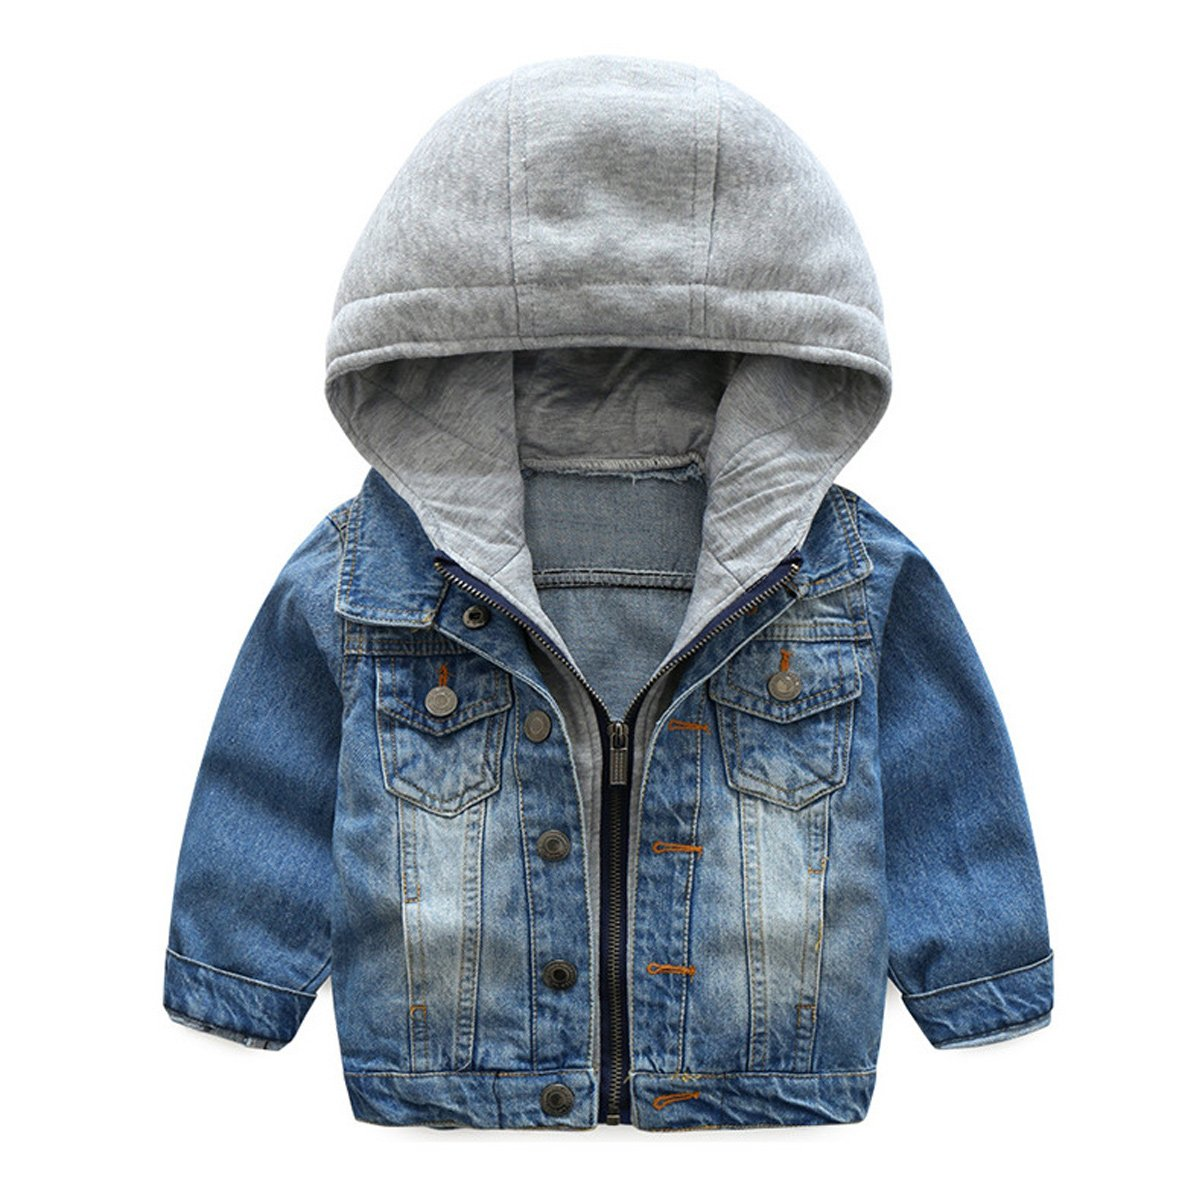 NABER Kids Boys' Fashion Zipper Denim Outerwear Jacket Coat with Hooded Age 3-10 Years (7-8 Years)